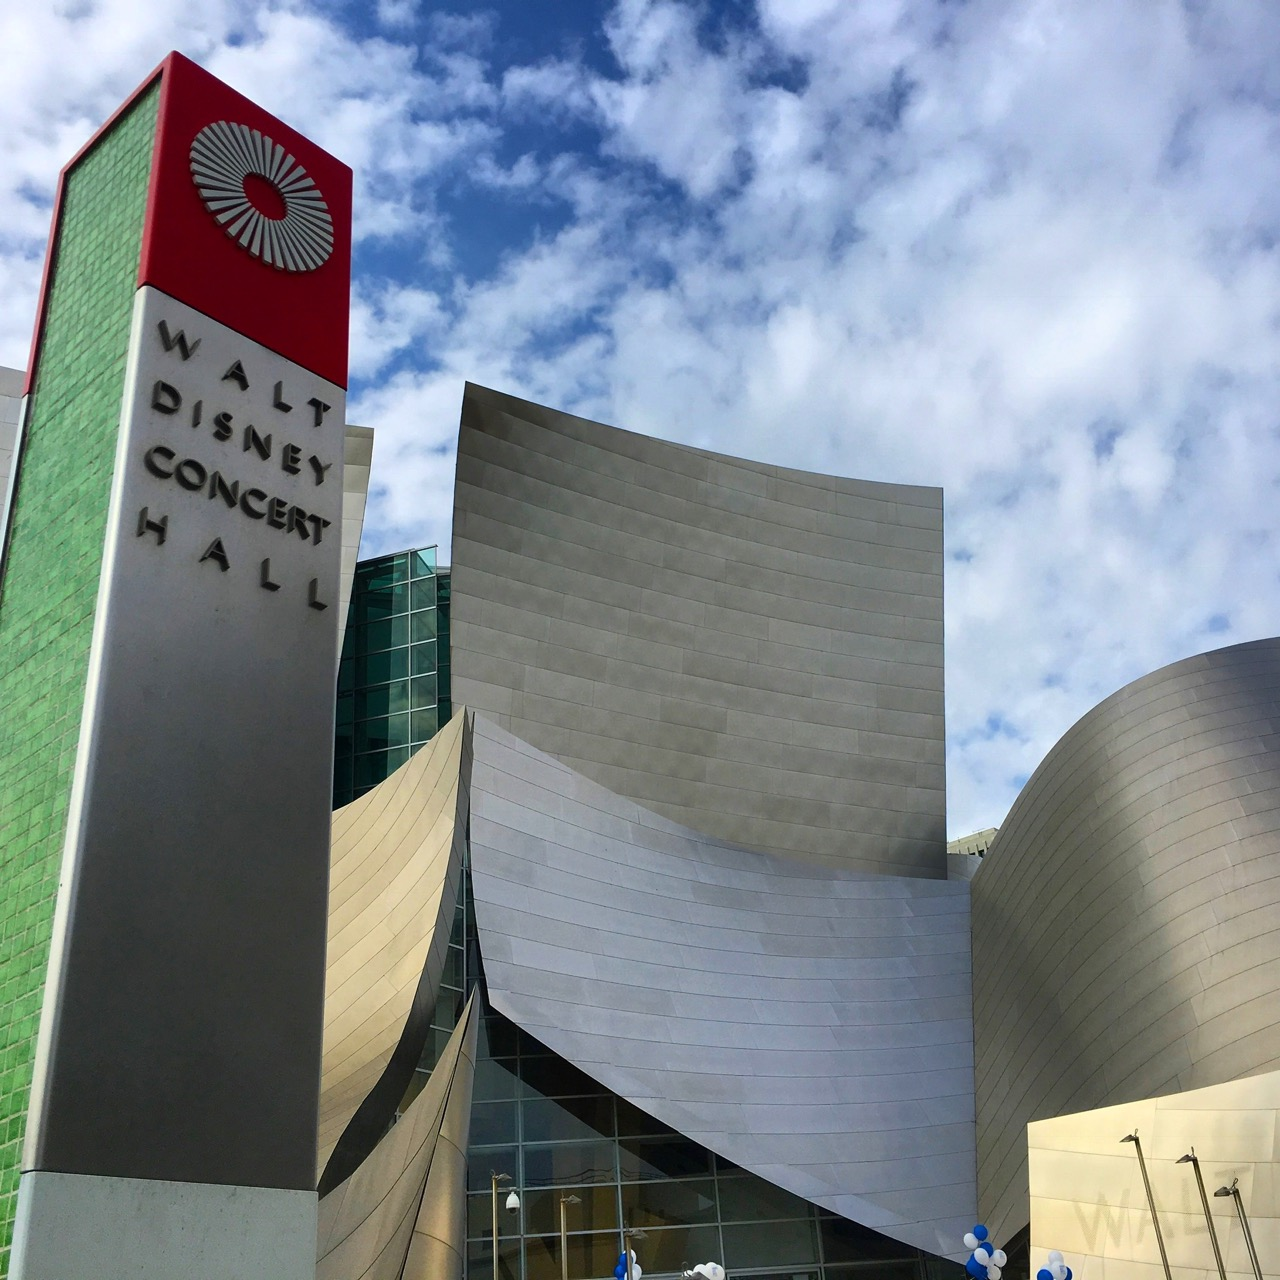 Walt Disney Concert Hall is just one of the things to do in Los Angeles with kids